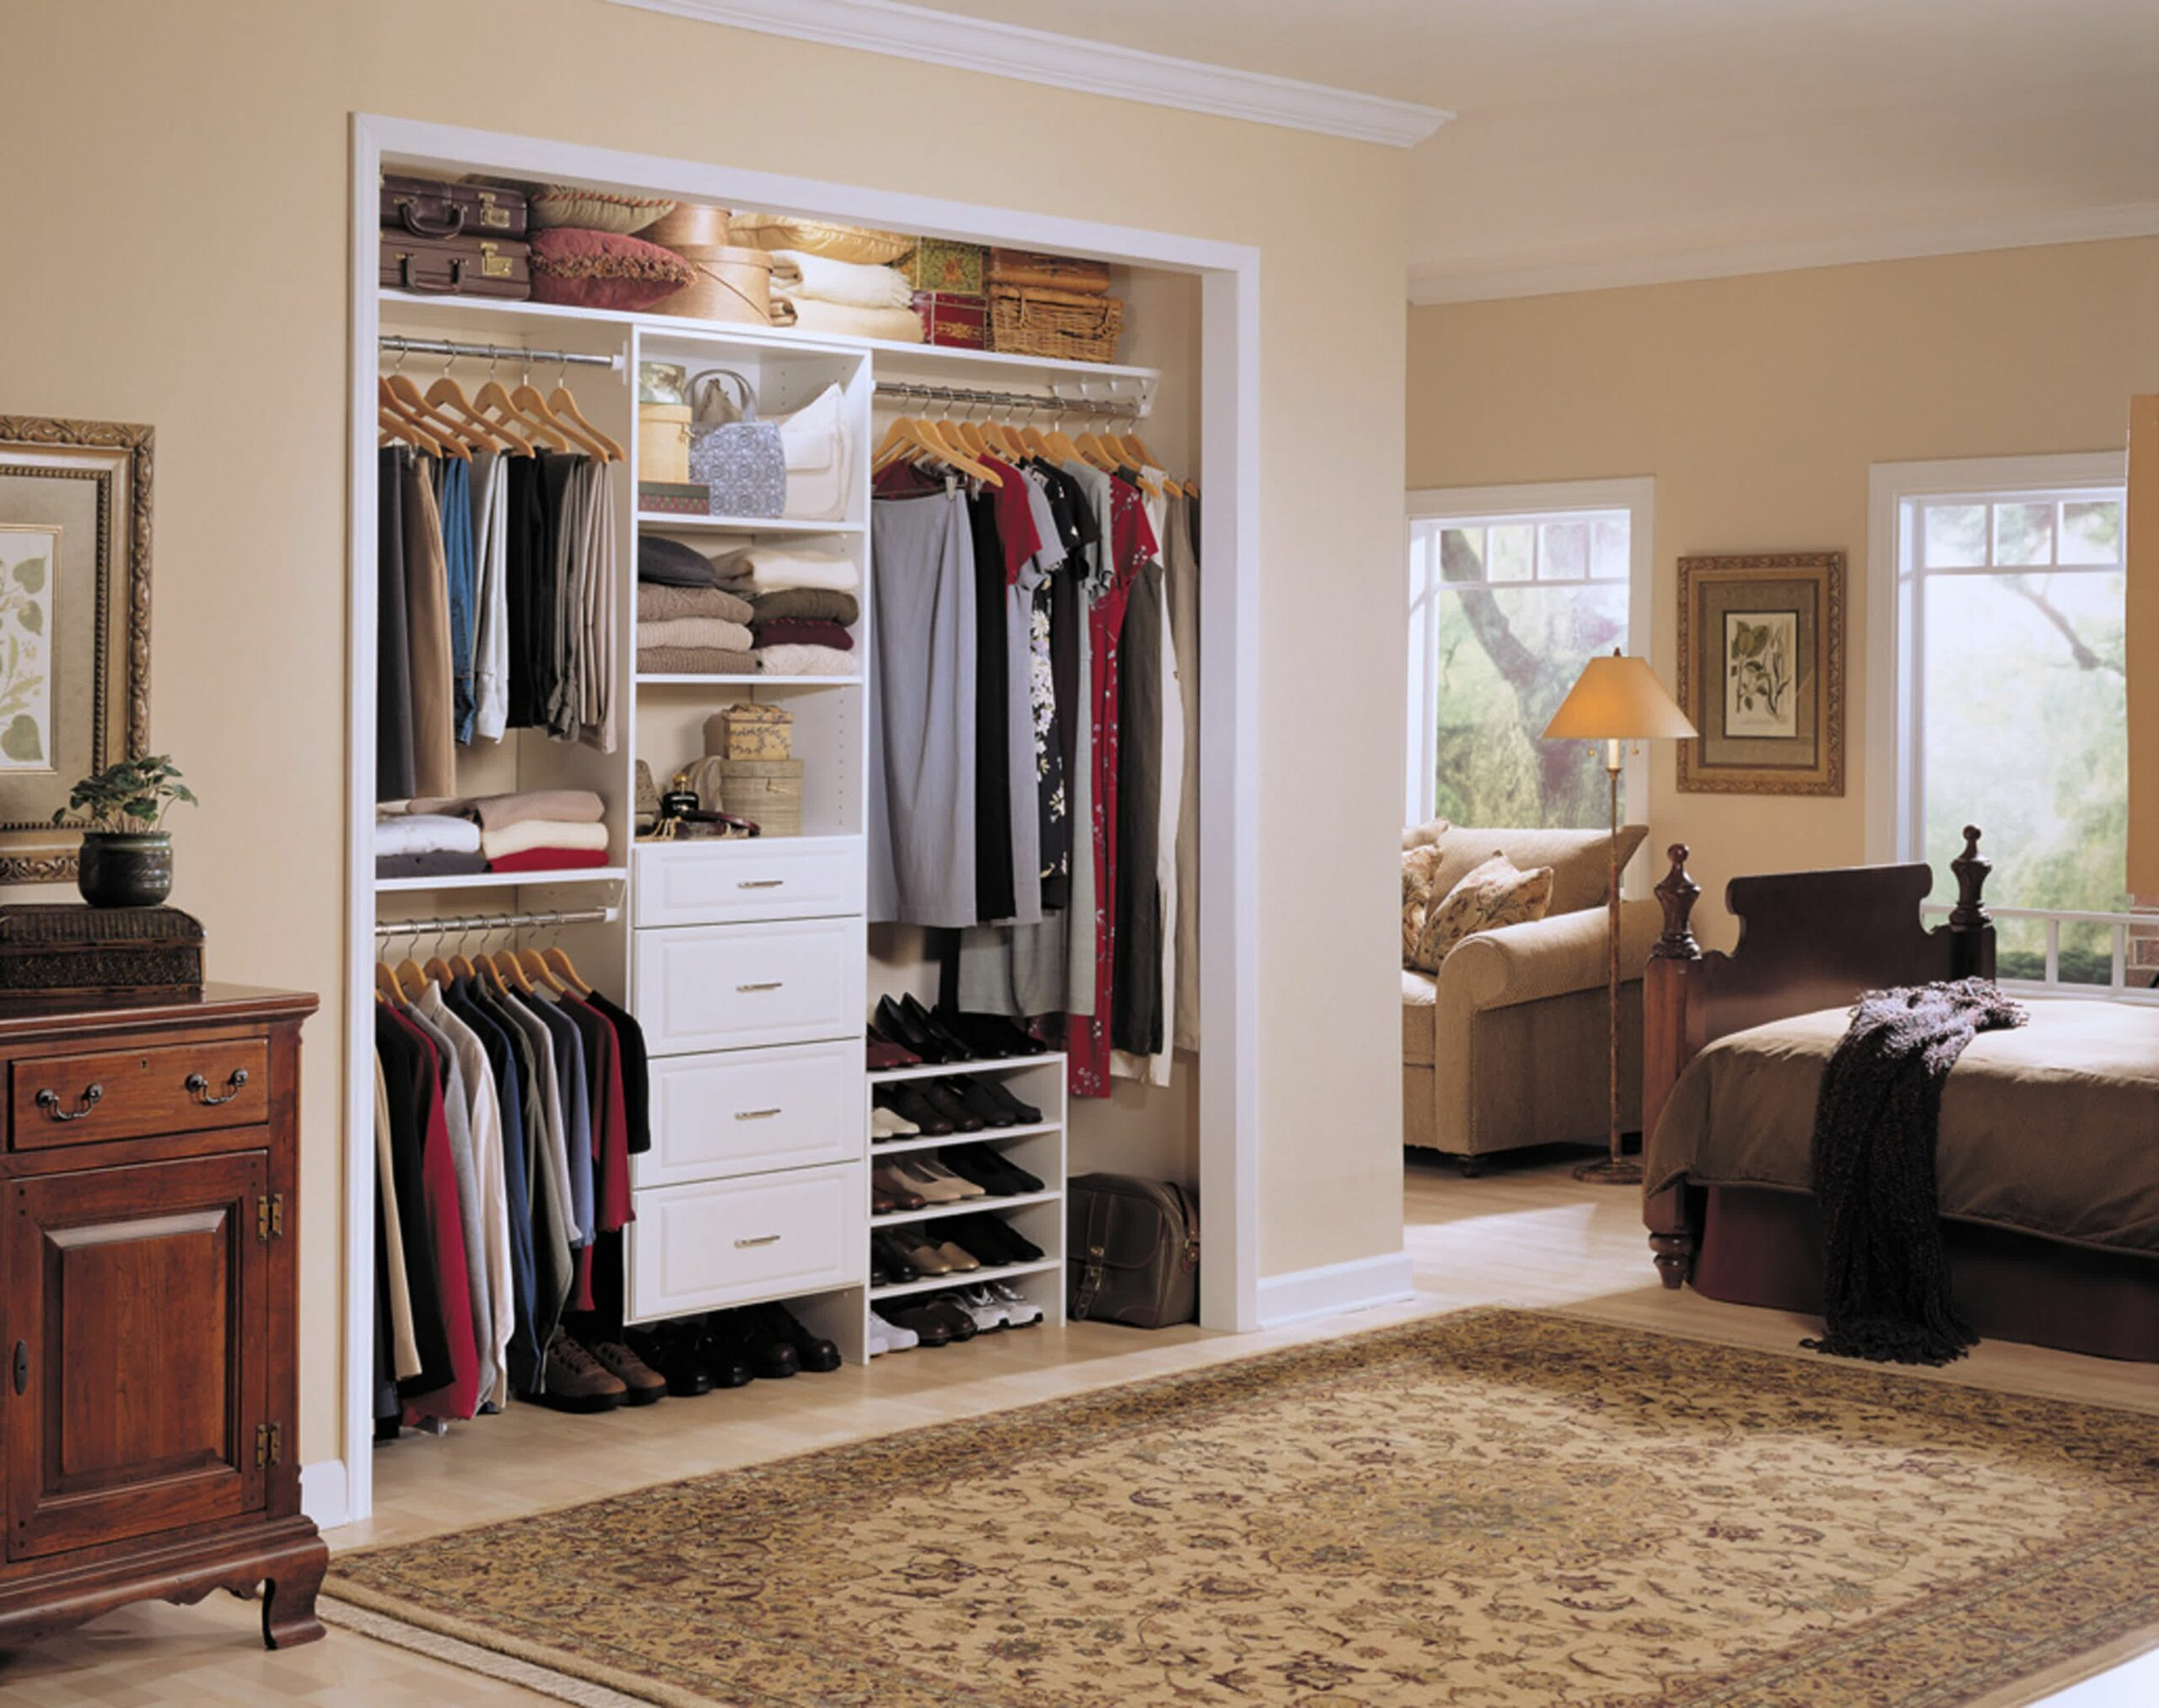 No Closet Solutions Bedroom Inspired Organize Without Dresser ...